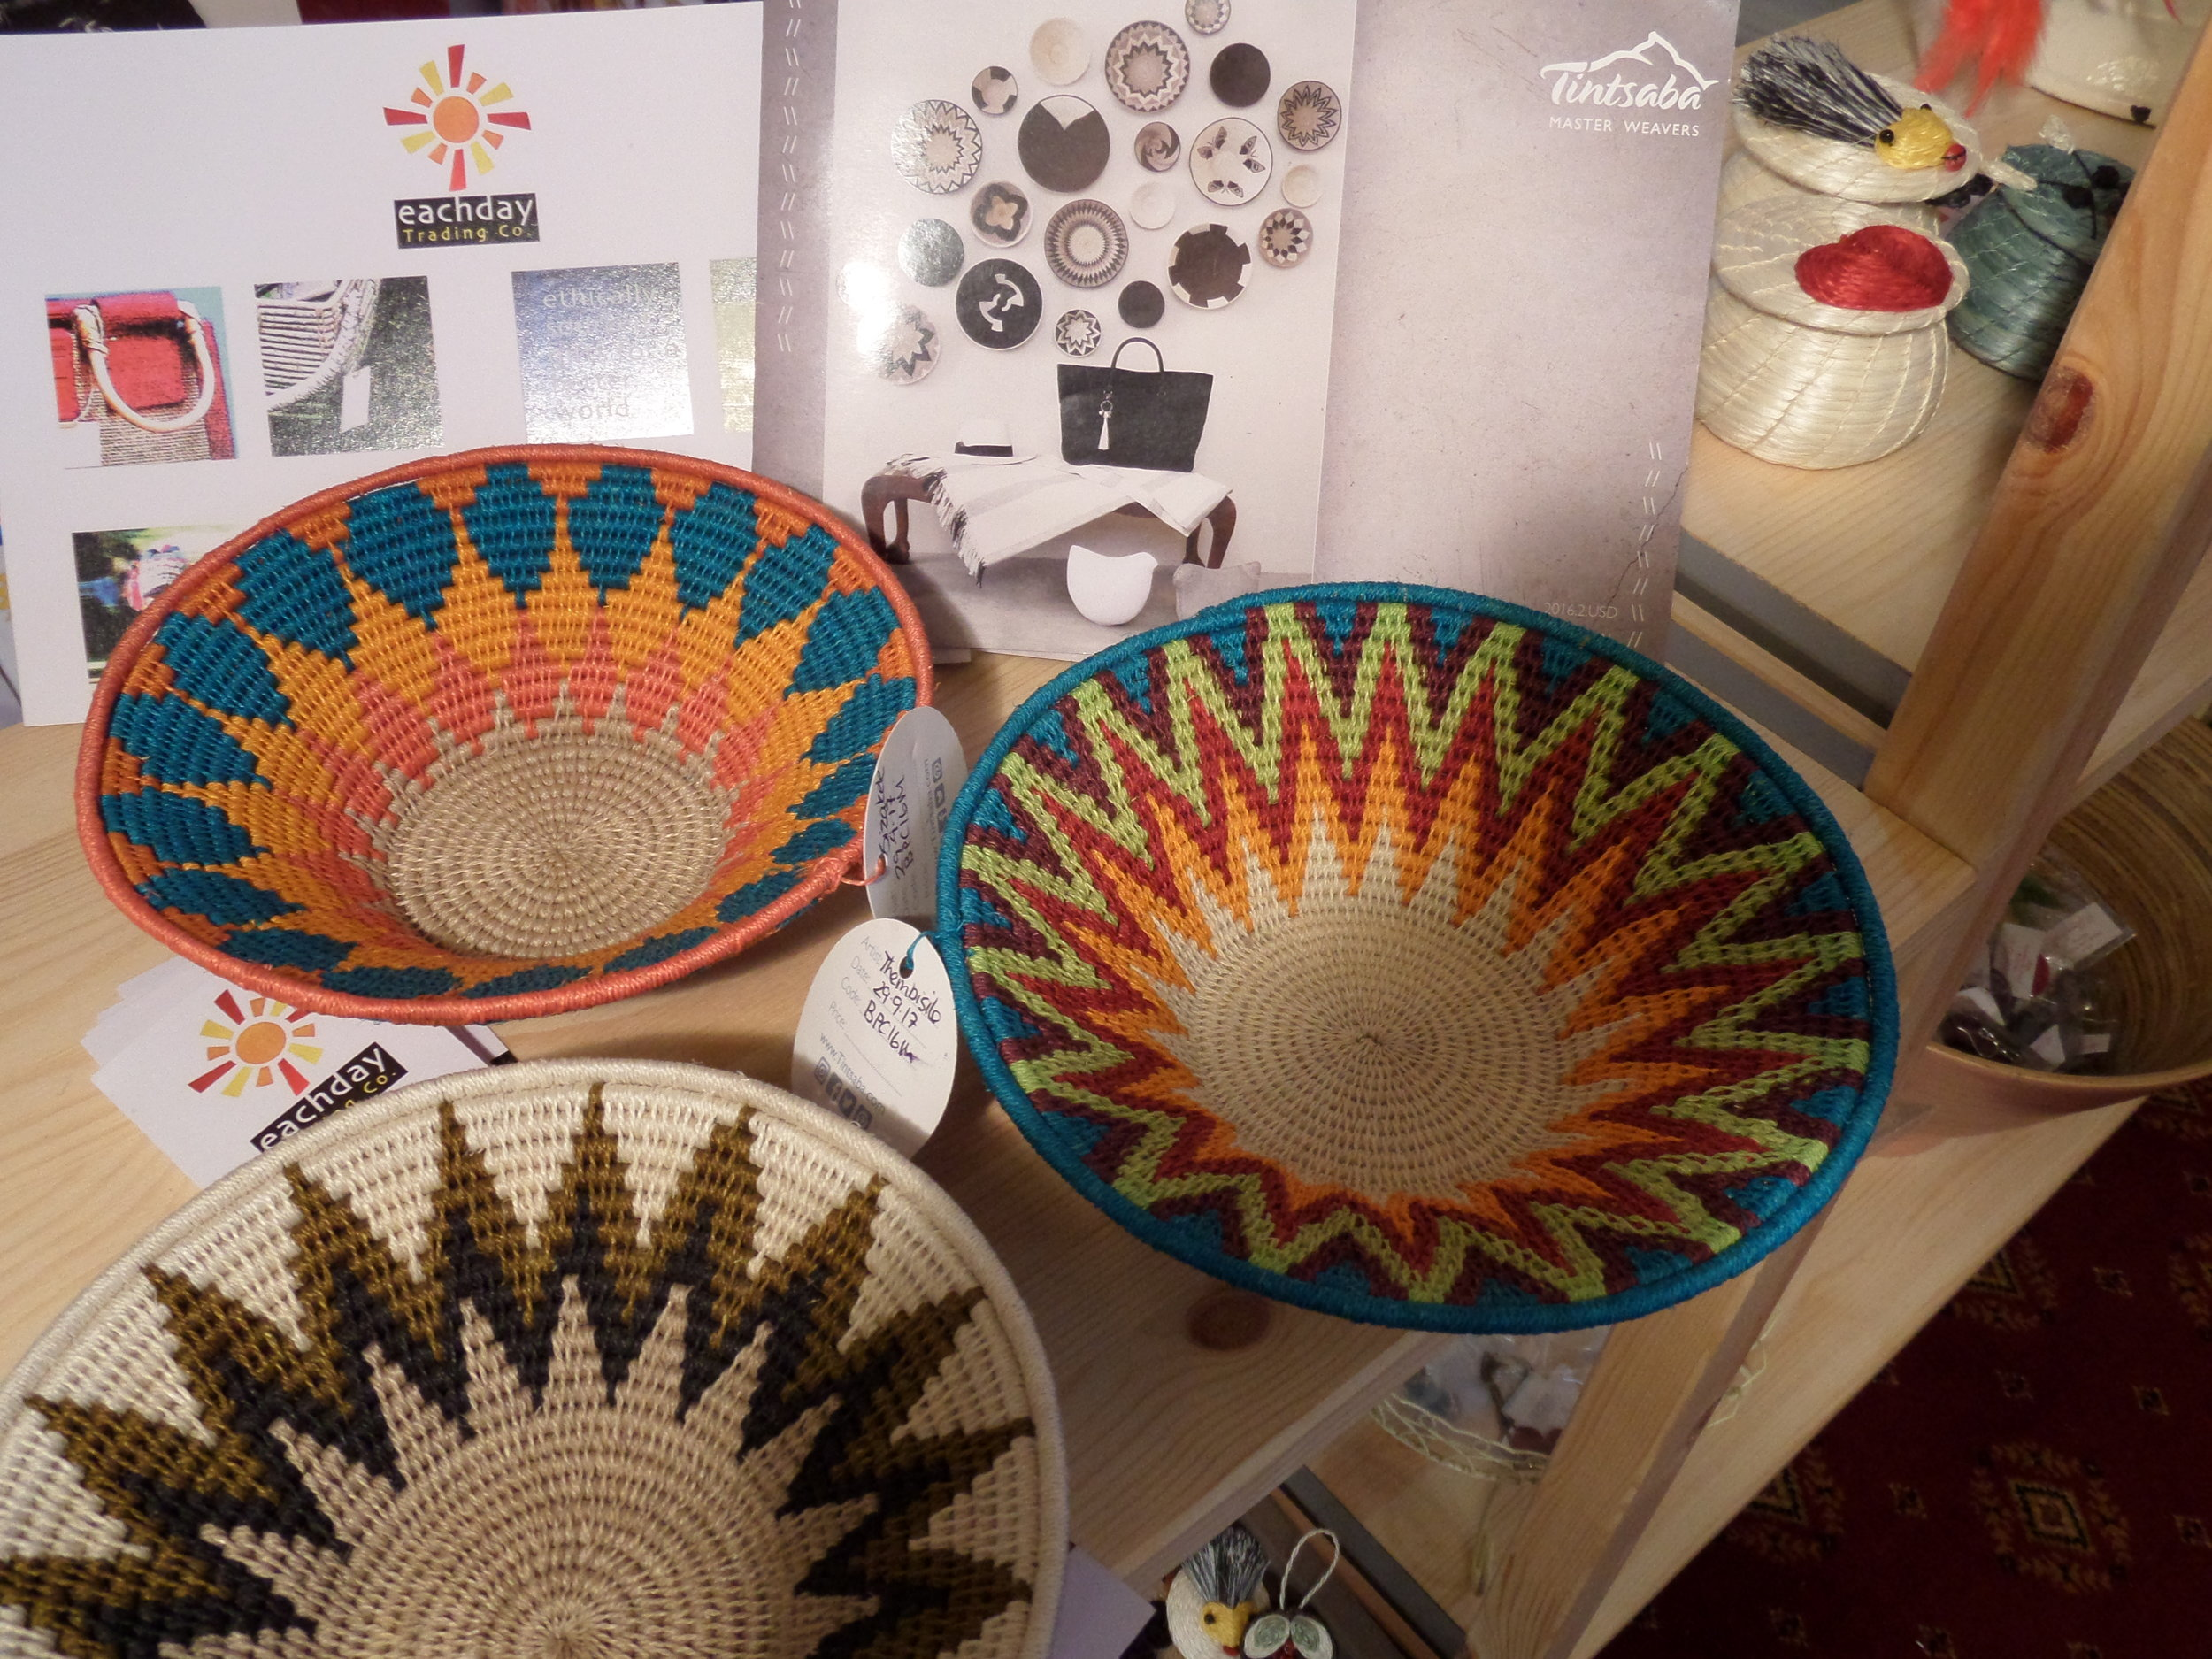 Swazi crafts on show at UK charity events . Danaqa supports annual charity events run by Friends of the Earth in Cirencester, Cancer Research in Marshfield, Oxfam in Wells and the Fairtrade Foundation in Brecon.